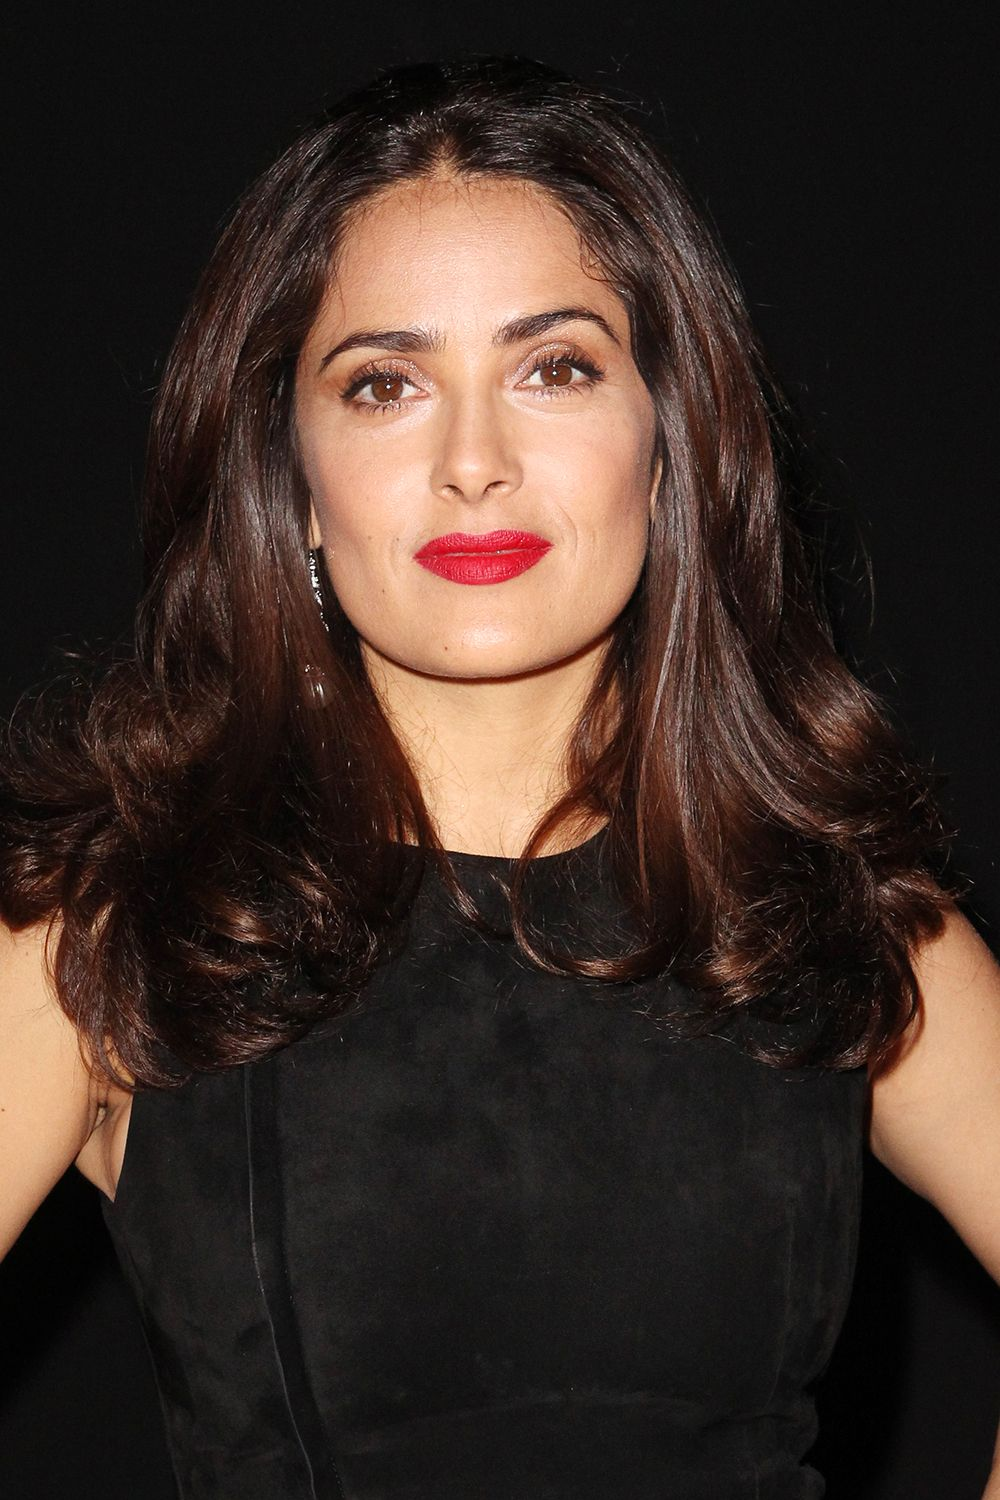 """Salma Hayek """"I don't believe in Botox, especially when [people] do it so young,"""" Hayek tells People . """"They destroy themselves. They keep telling young girls, 'Do it young, so you never get wrinkles.' No, your face is going to fall. You'll have to keep getting more and more and more each time. So if you're going to do it, I recommend doing it as late as you can."""""""